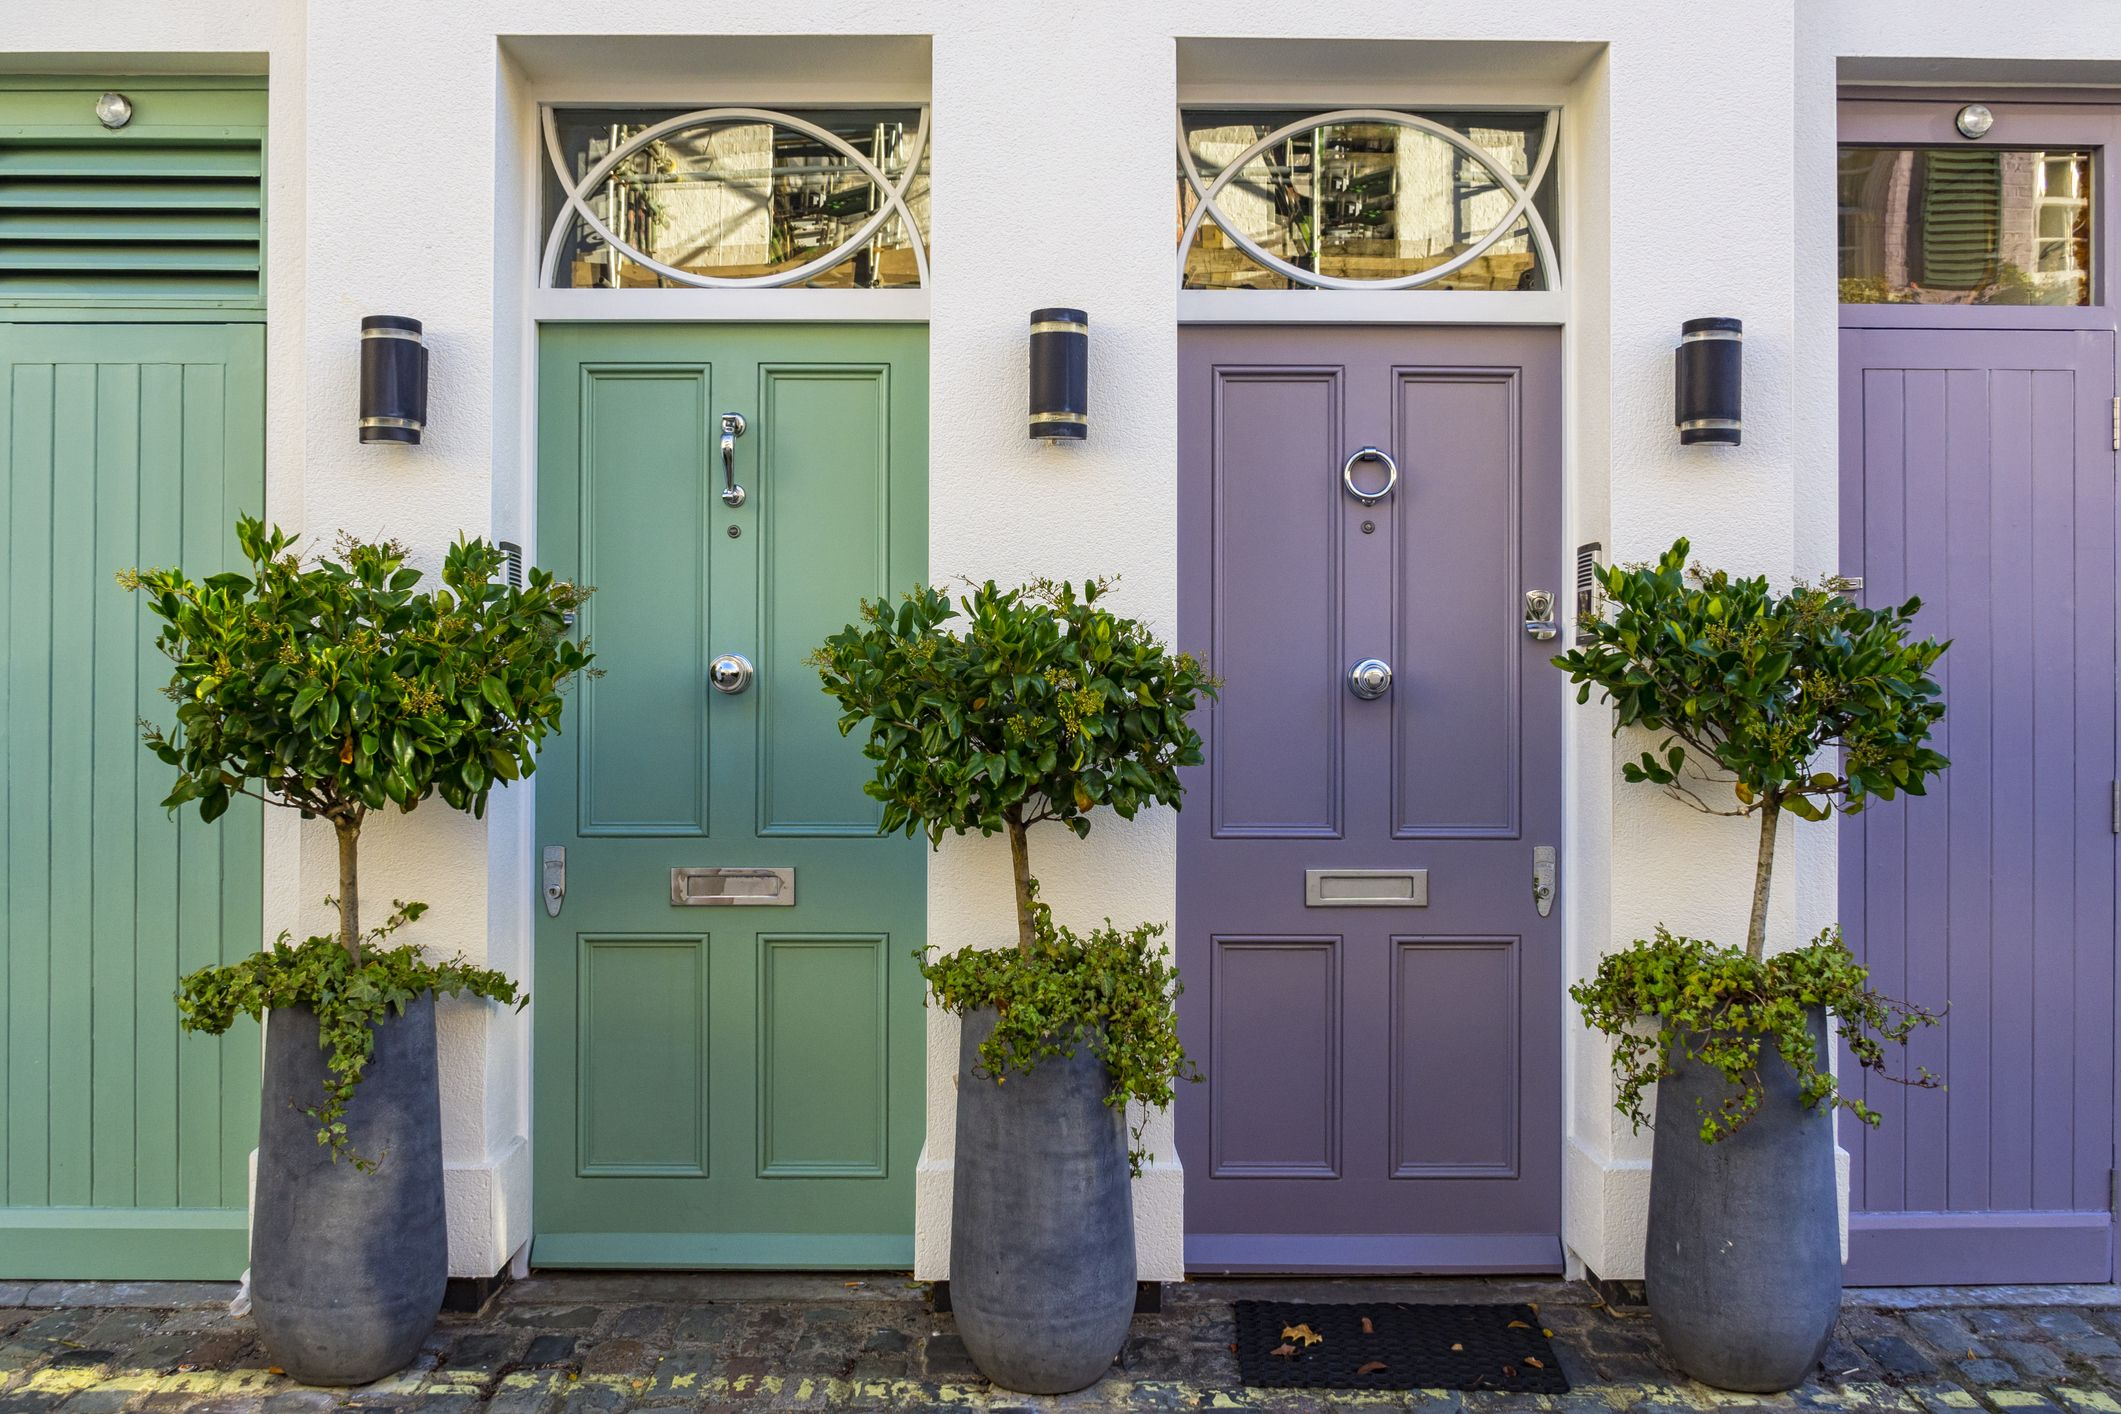 How to decorate your front door, based on your star sign